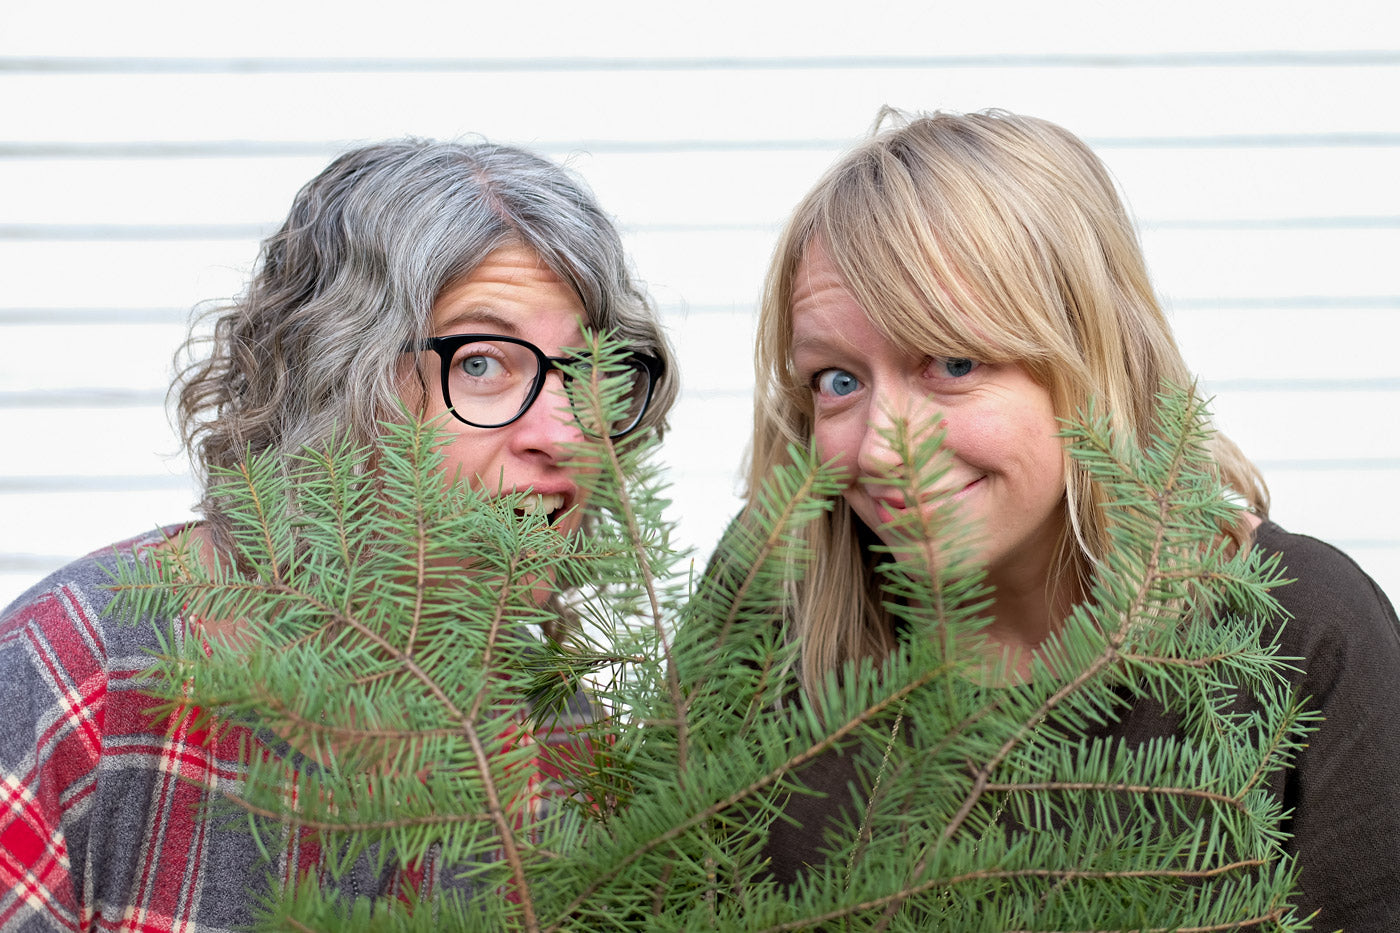 Jaime and Amber peeking out from some greenery